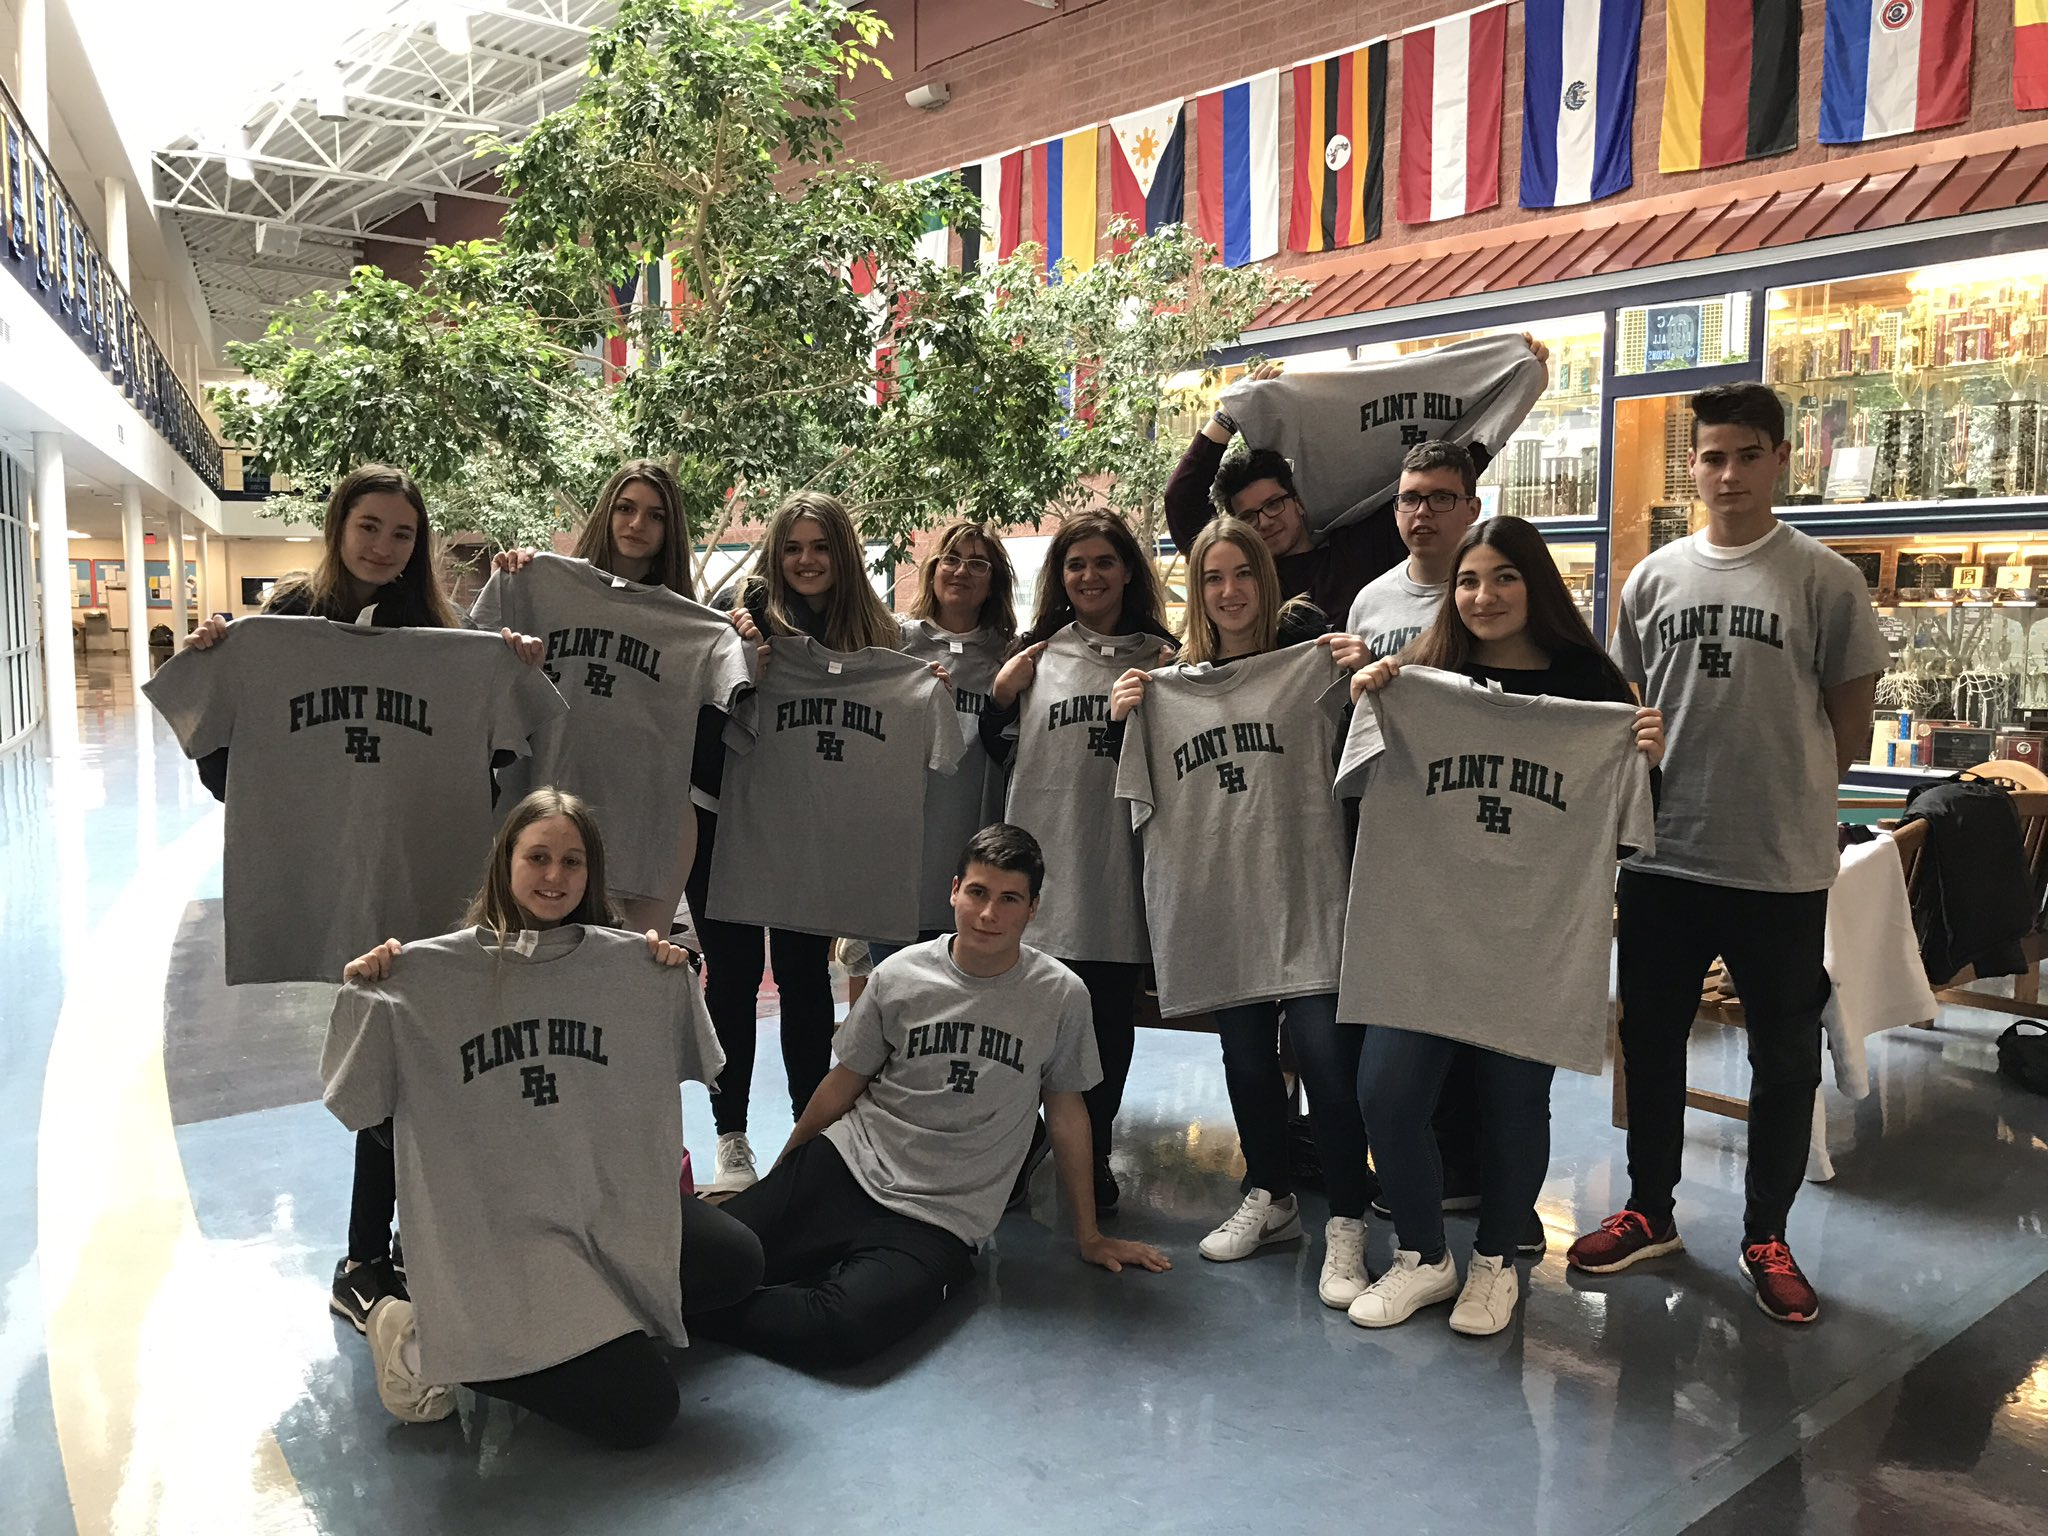 ¡Todos somos Huskies! Exchange students show off their Husky shirts! #myflinthill https://t.co/964ViYZTpp